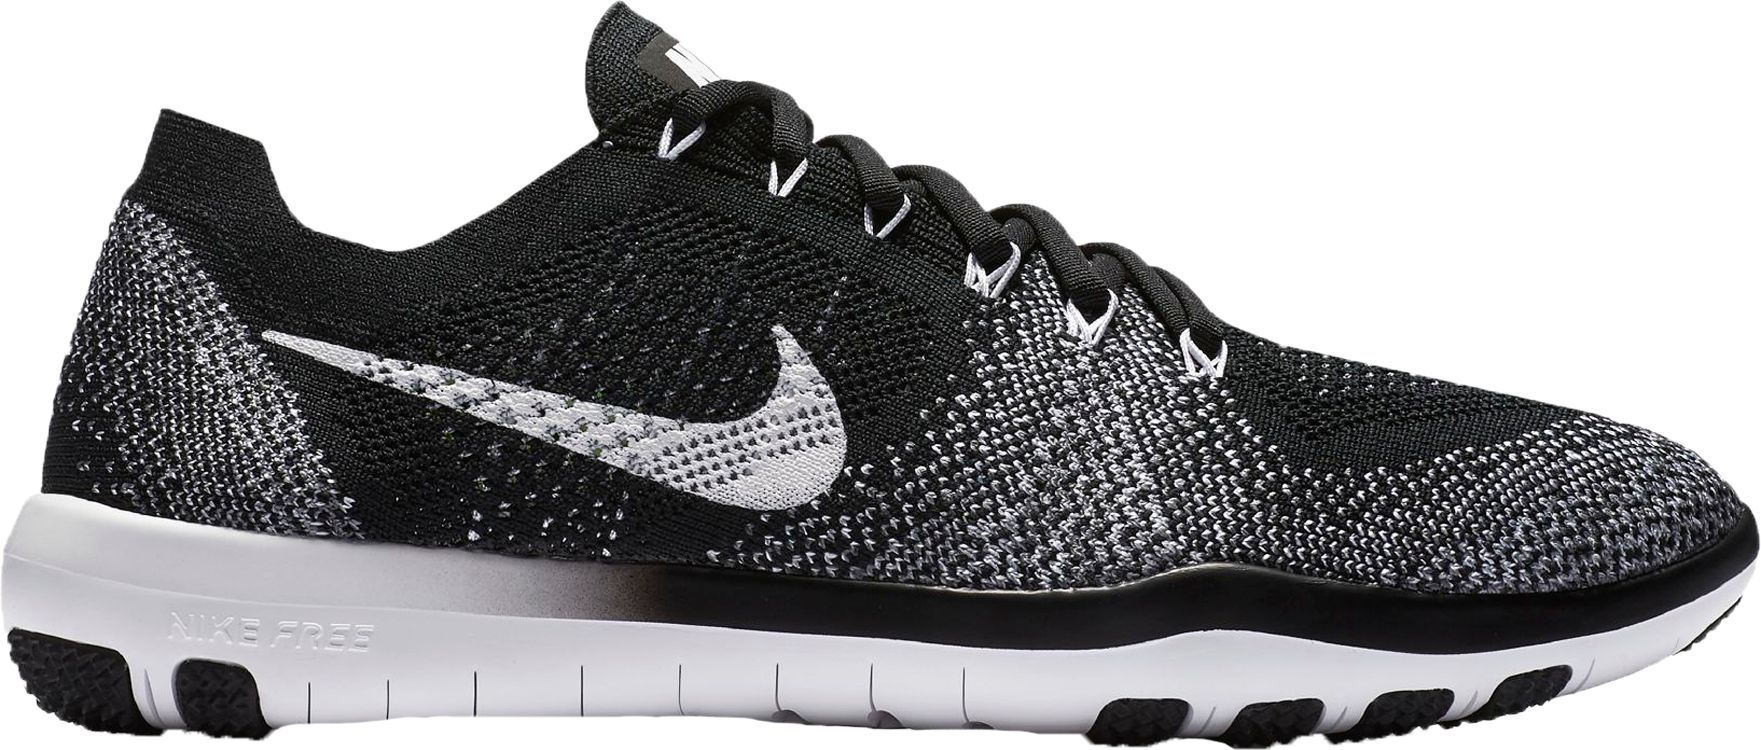 2bfaf5511e06b7 ... (black white-cool grey) Nike Womens Free Focus Flyknit 2 Training Shoes  DICKS Sport ...